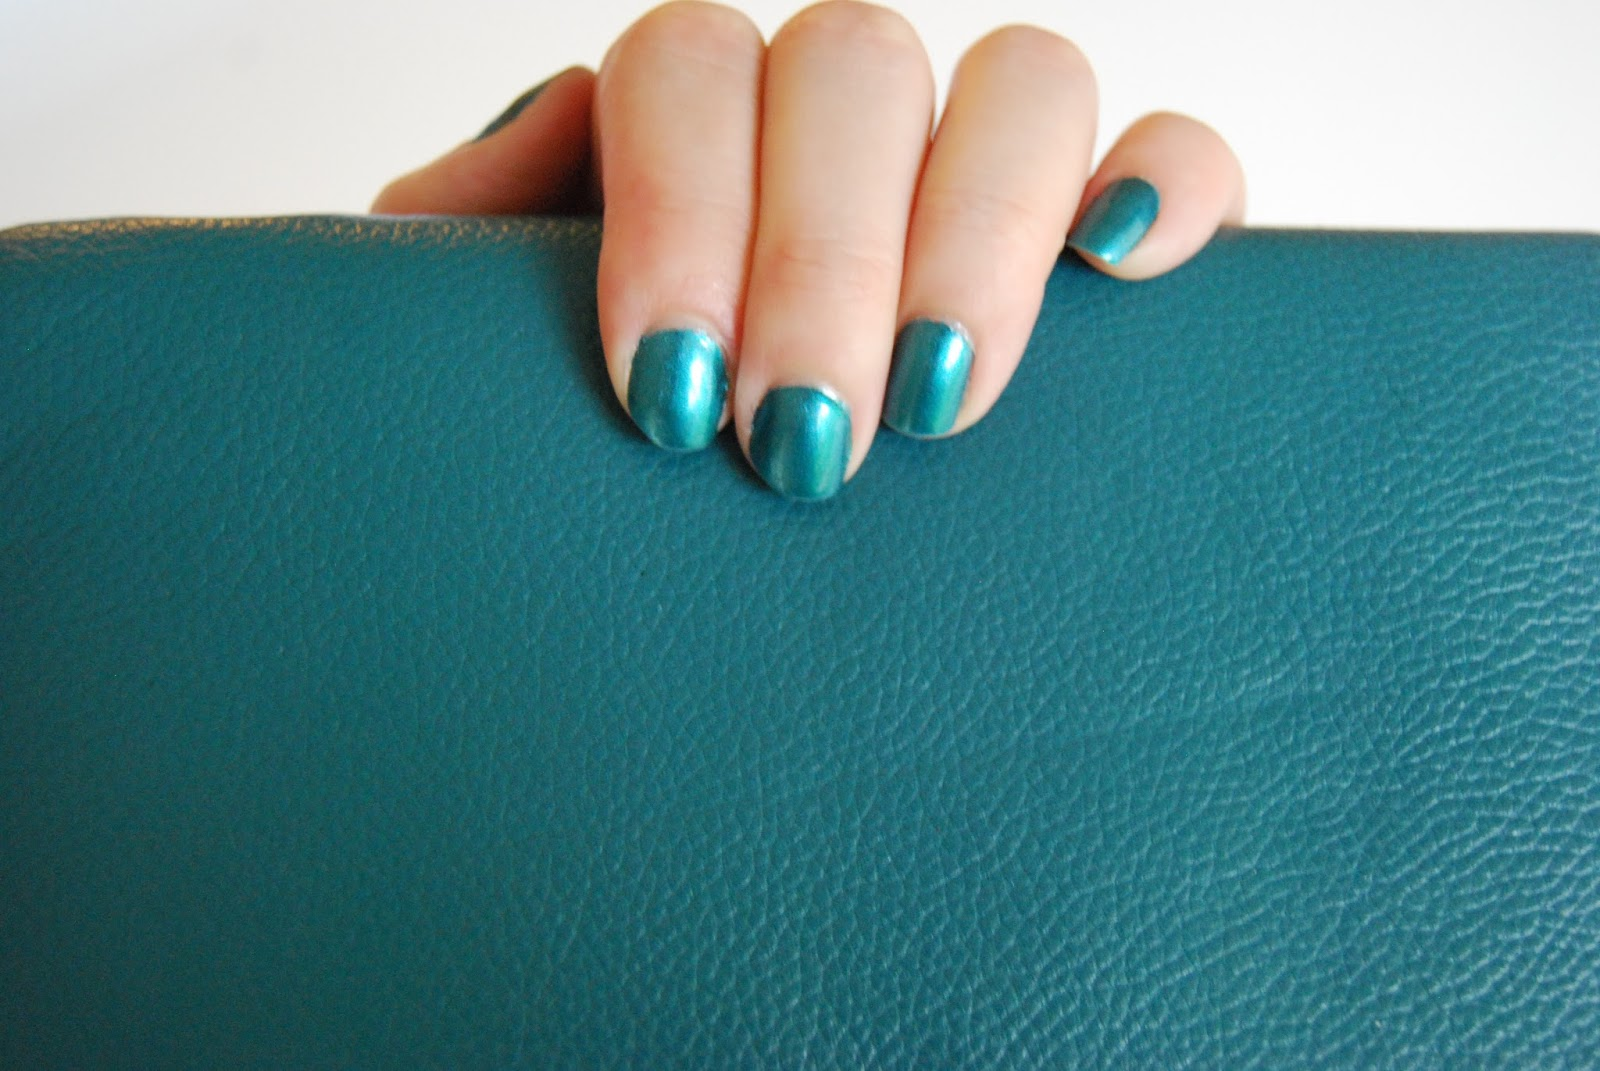 Crafty Thingamabobs Calipso Teal Vs Essie Trophy Wife